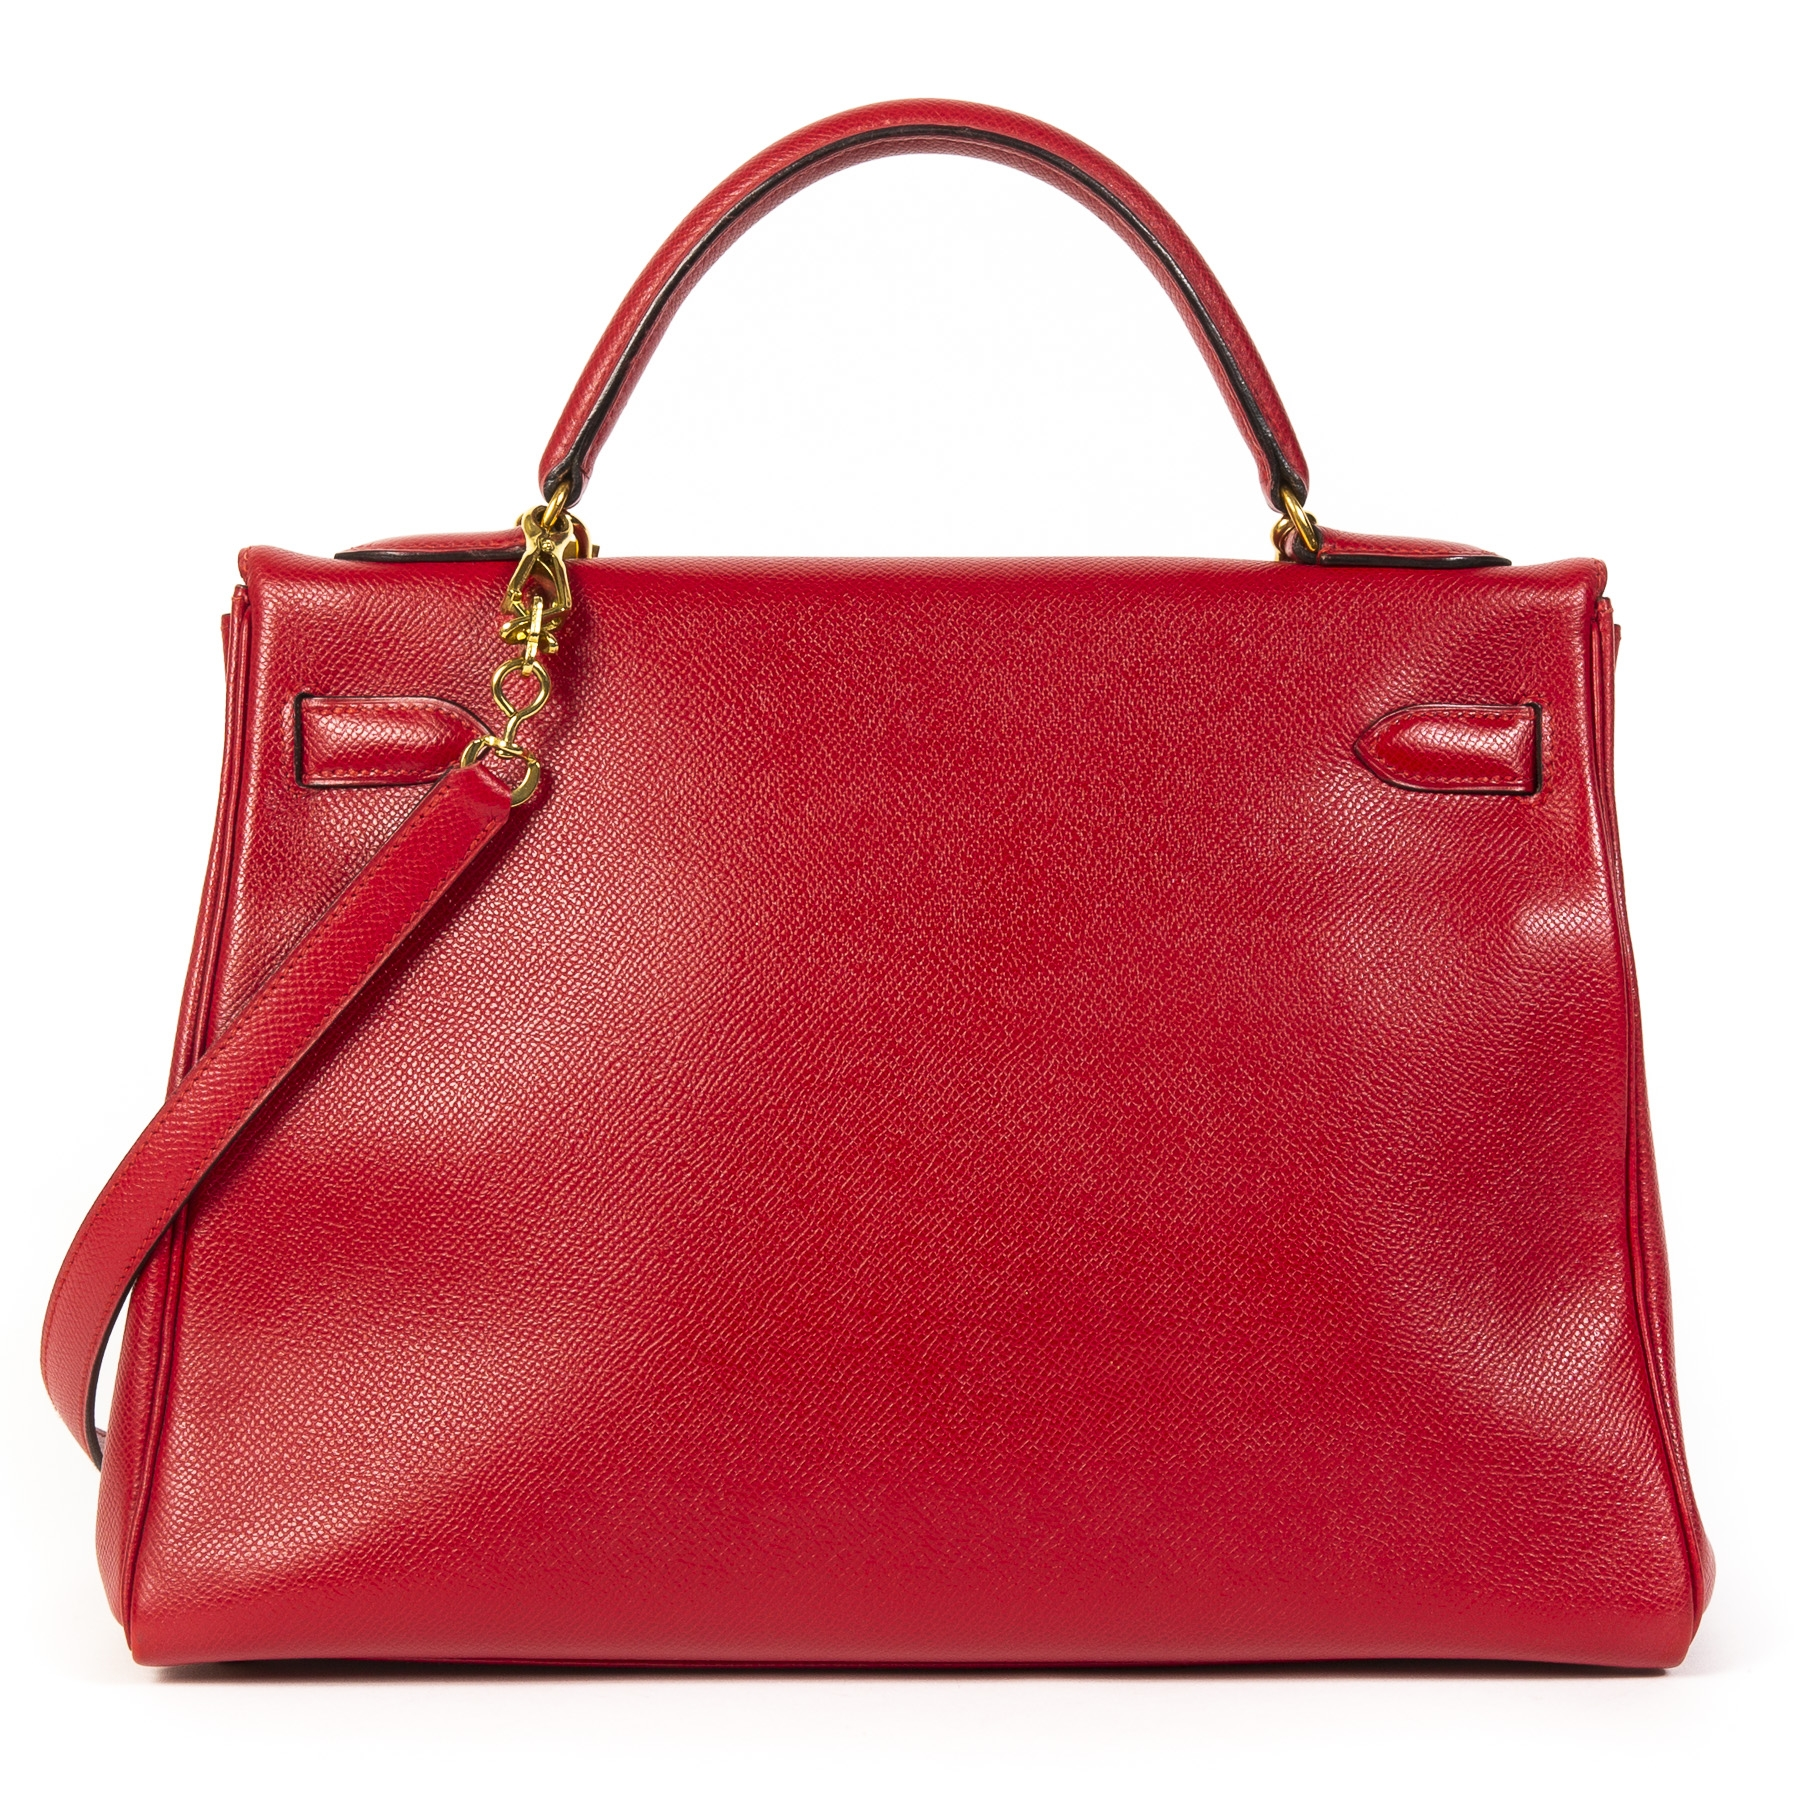 We buy and sell your authentic Hermès Kelly 28 Red Epsom GHW